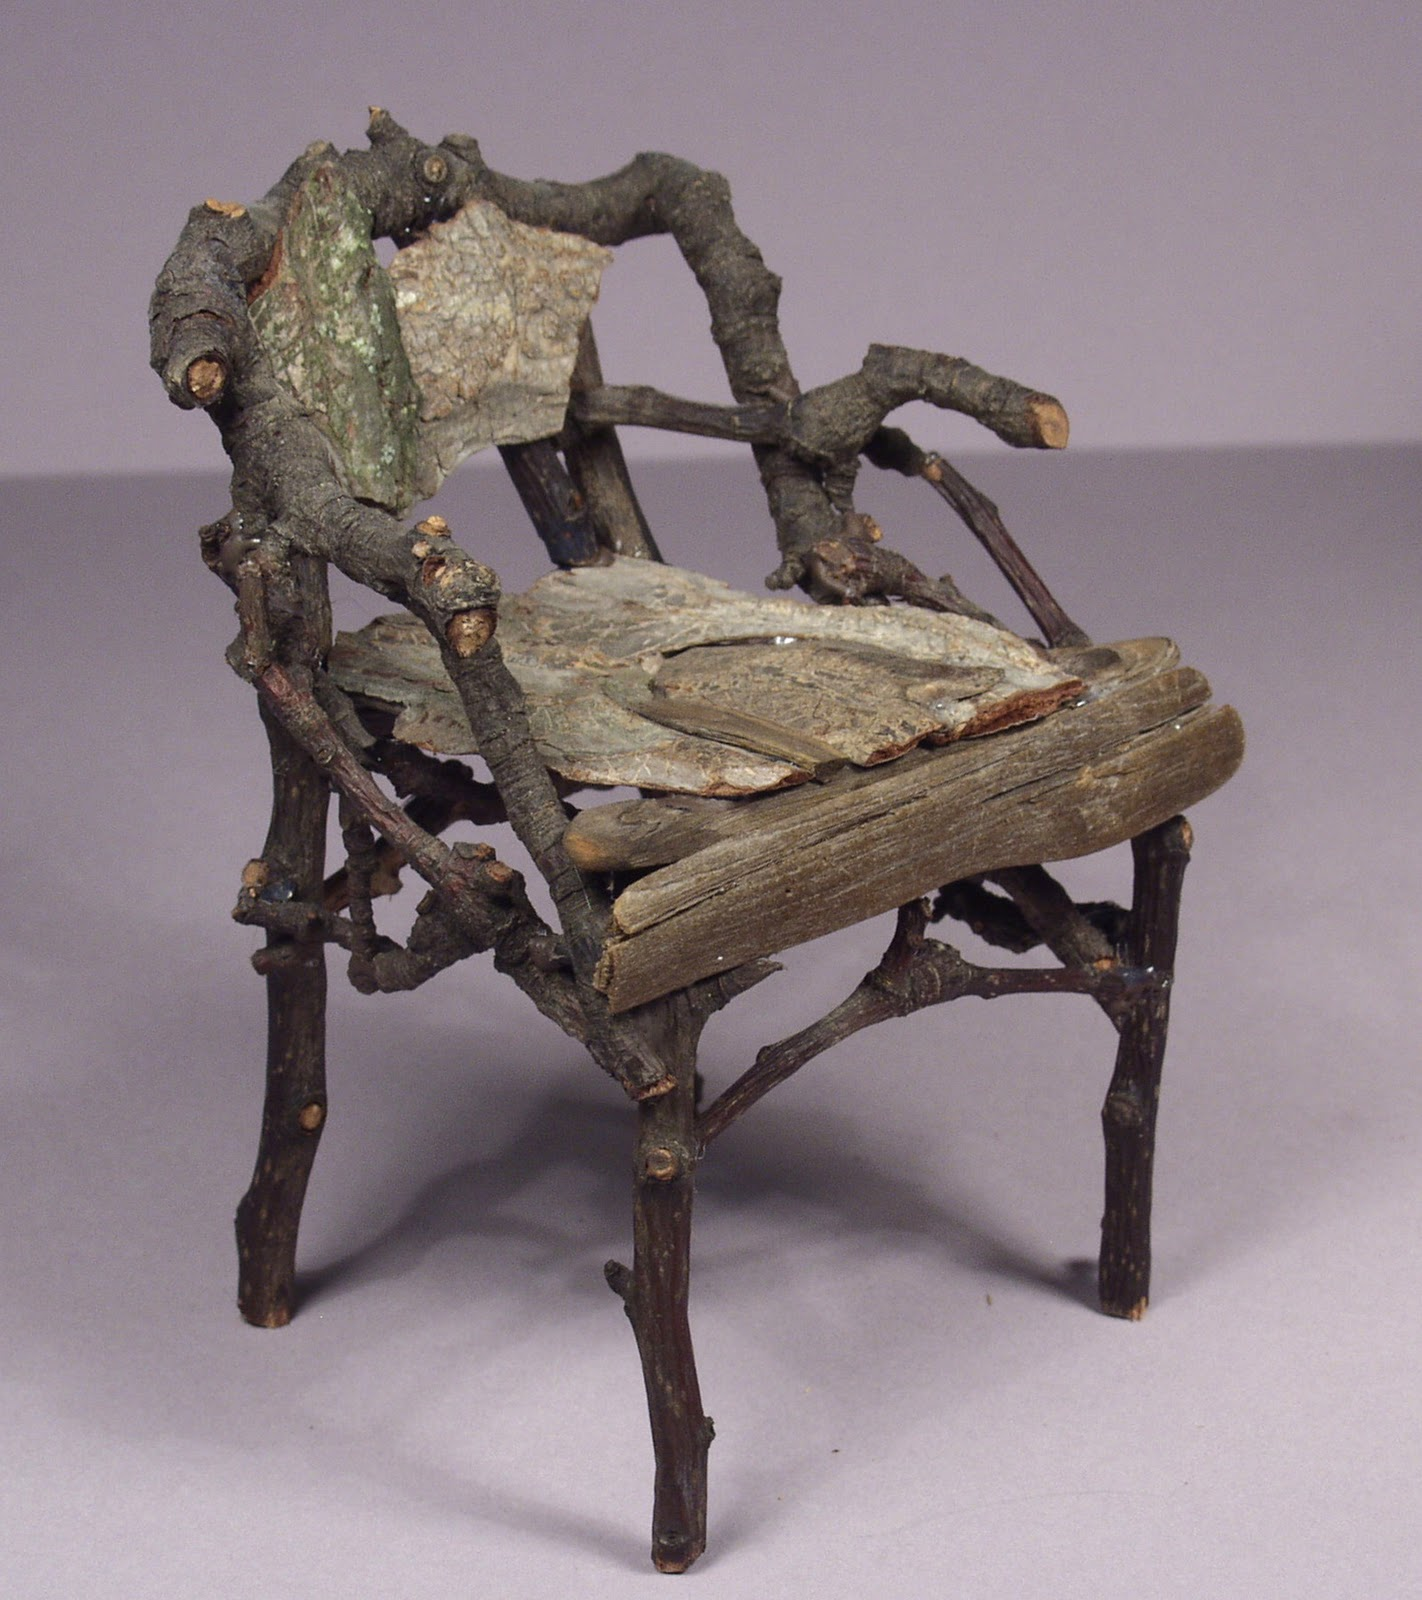 Charmant Miniature Rustic Twig Furniture Handcrafted By George C. Clark